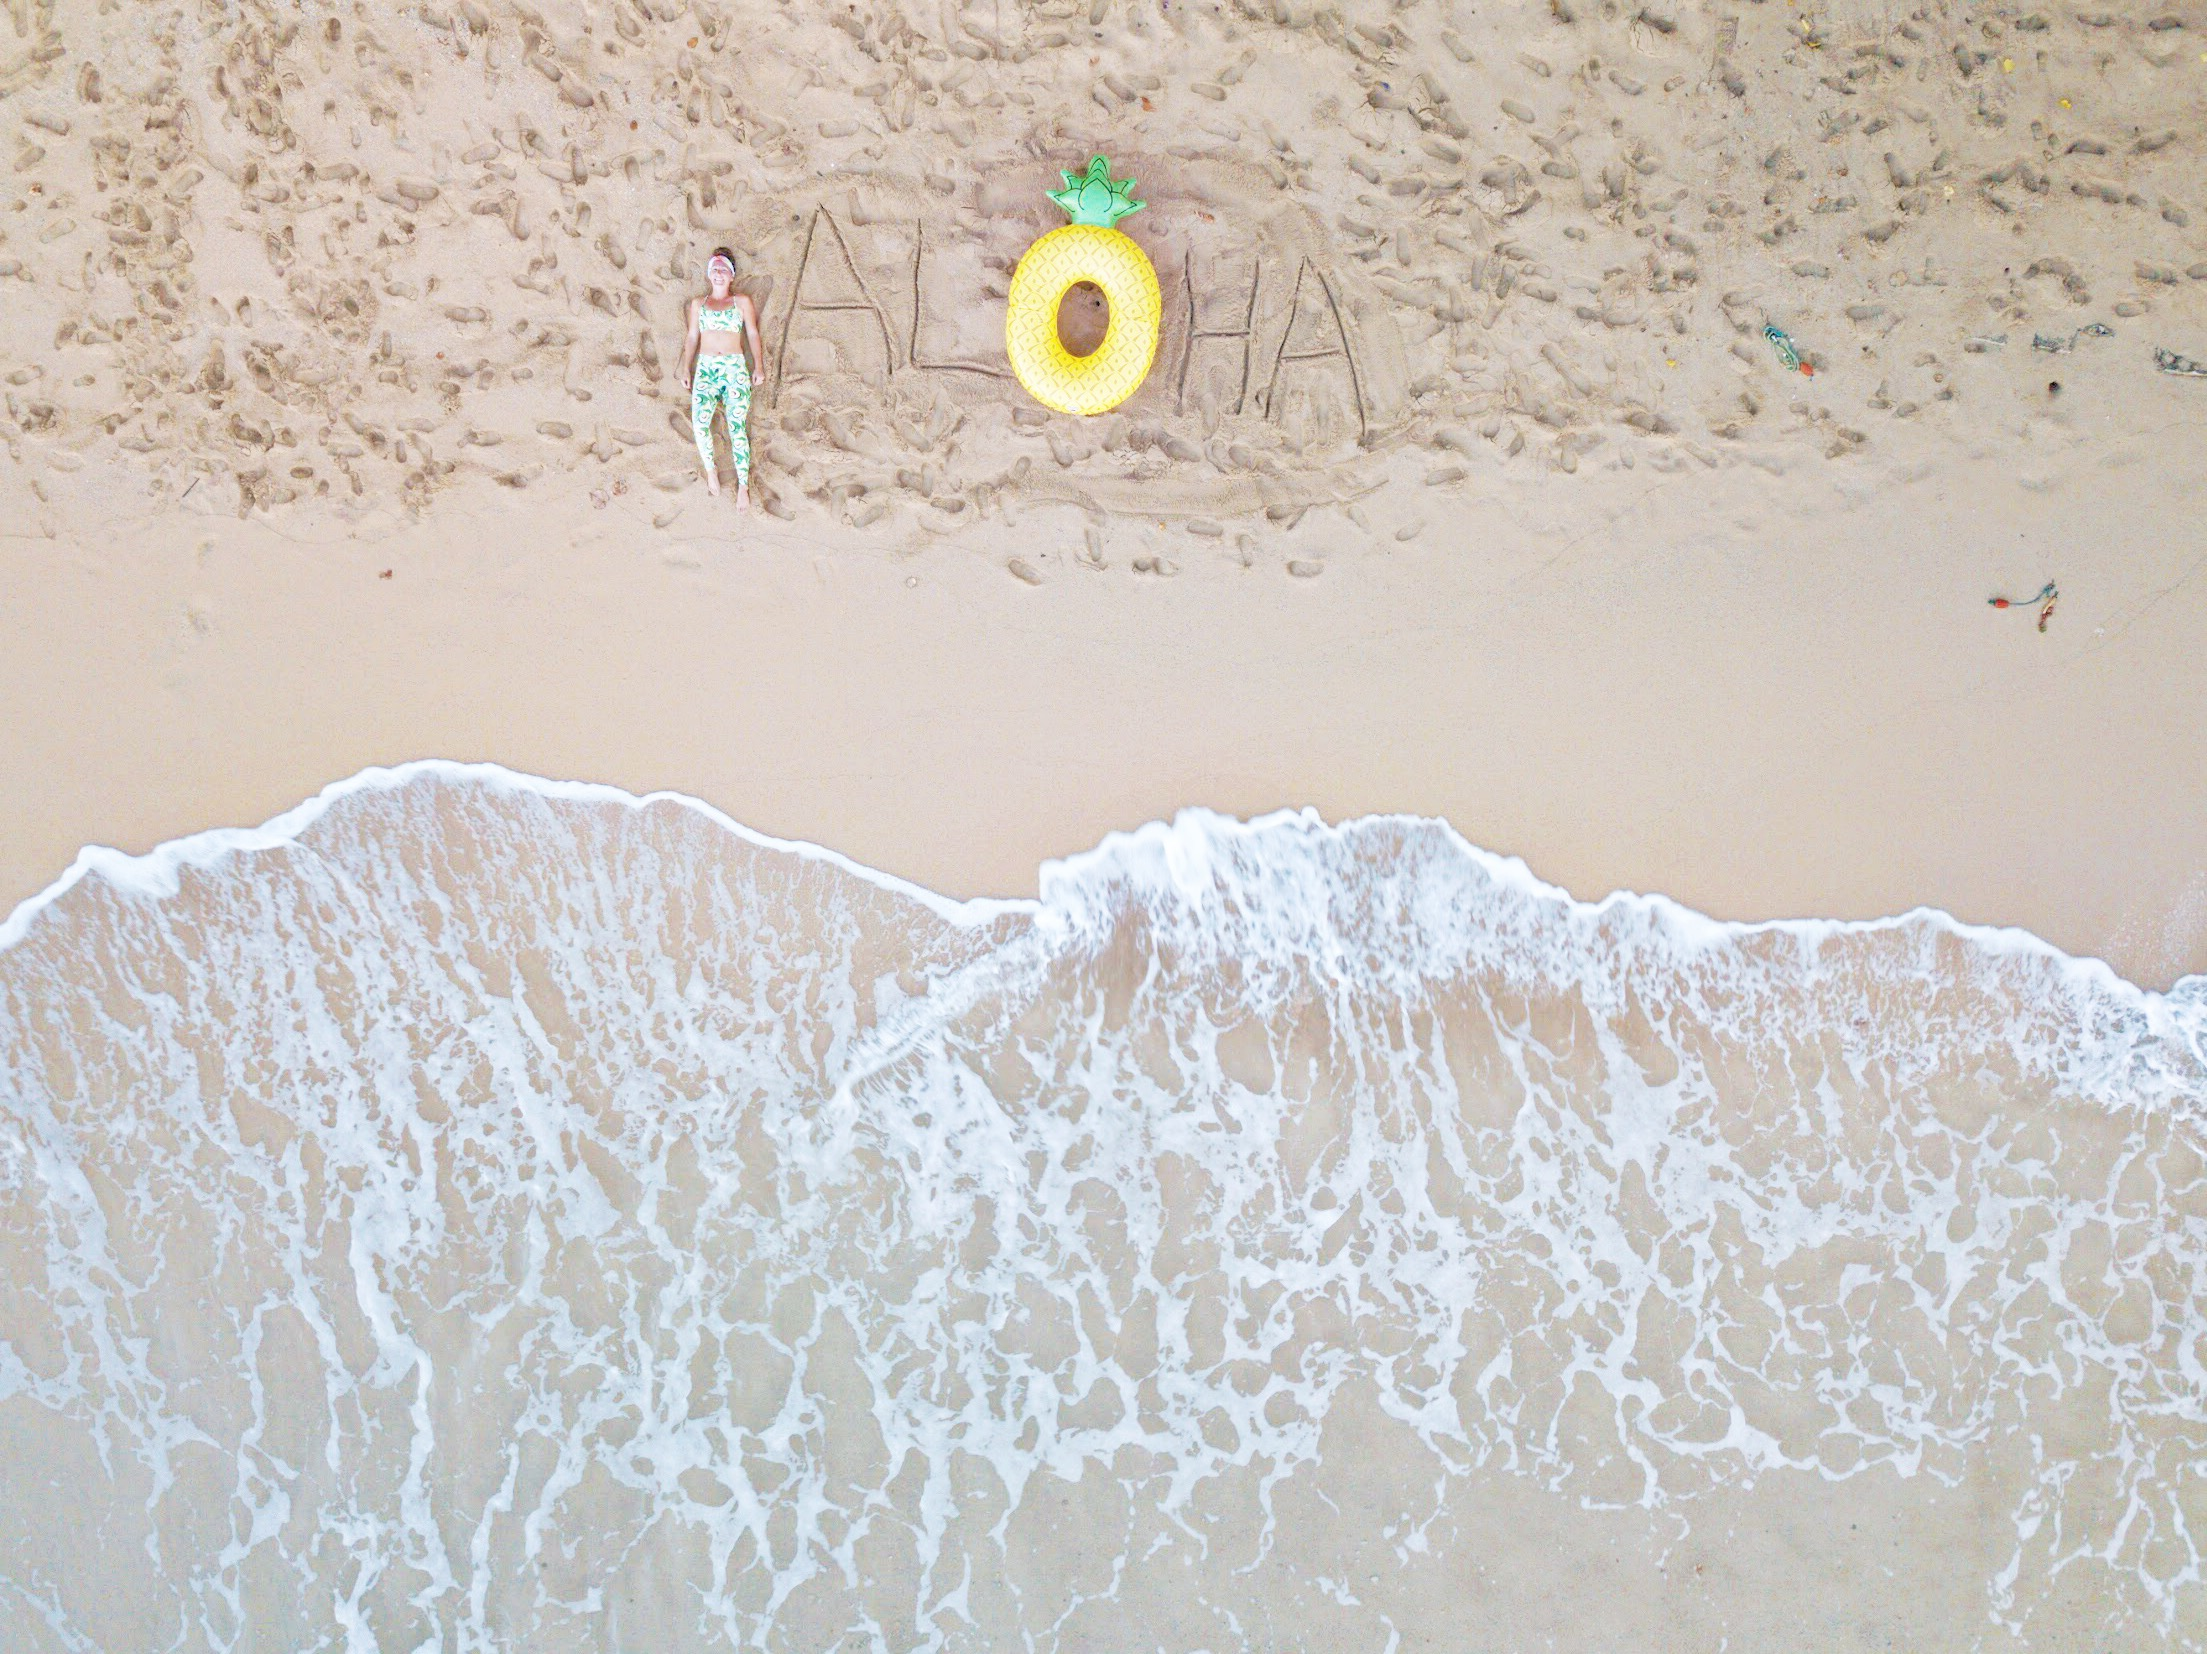 ALOHA - Hawaii - Drone Photography - 5 On Friday - Communikait by Kait Hanson